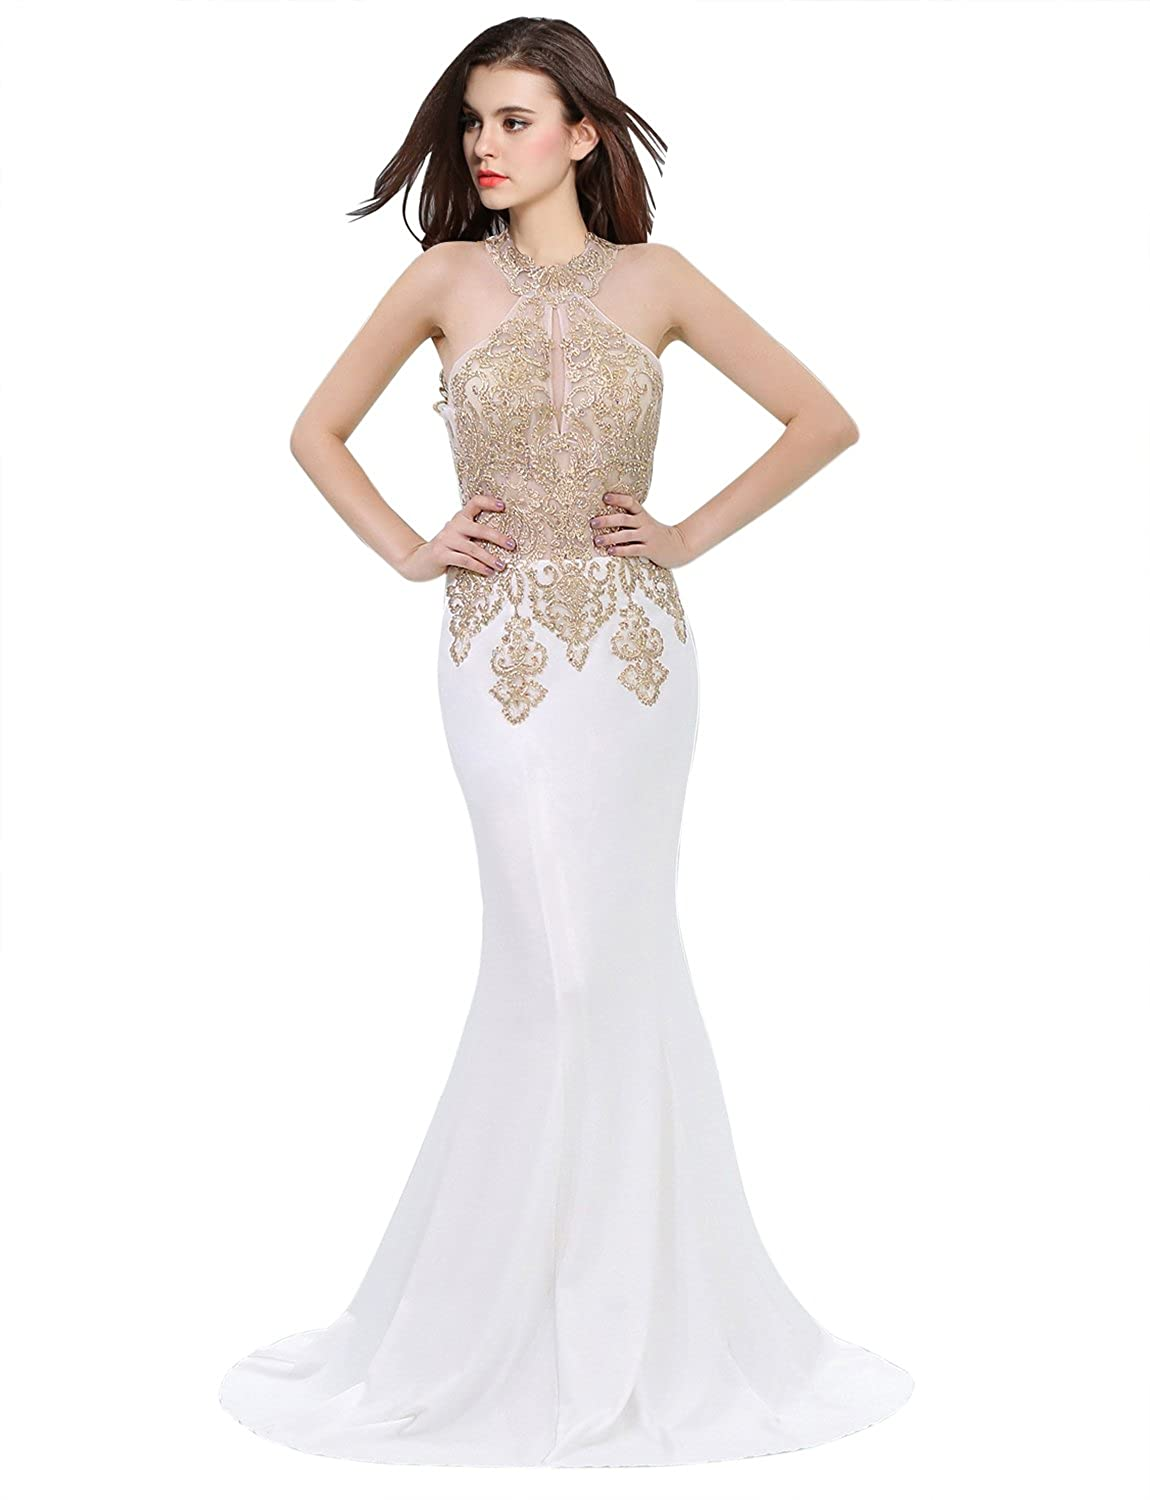 a54e680385a Amazon.com  Erosebridal Womens Prom Dresses Long Lace High Neck Evening Gown  Sexy Mermaid  Clothing